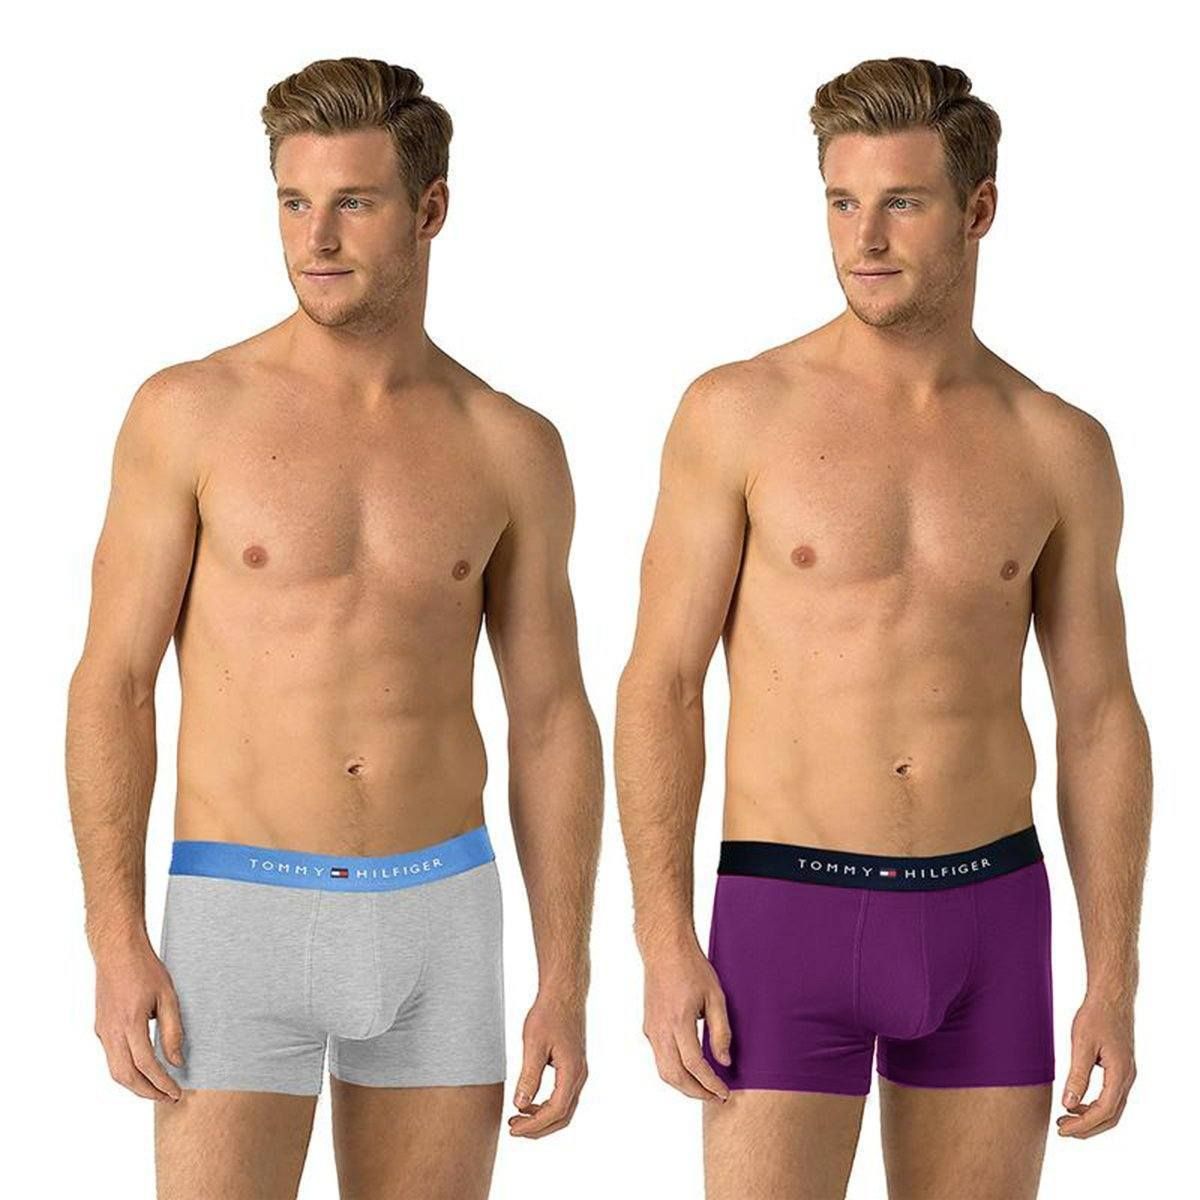 Pack of 3 assorted boxer shorts (910)